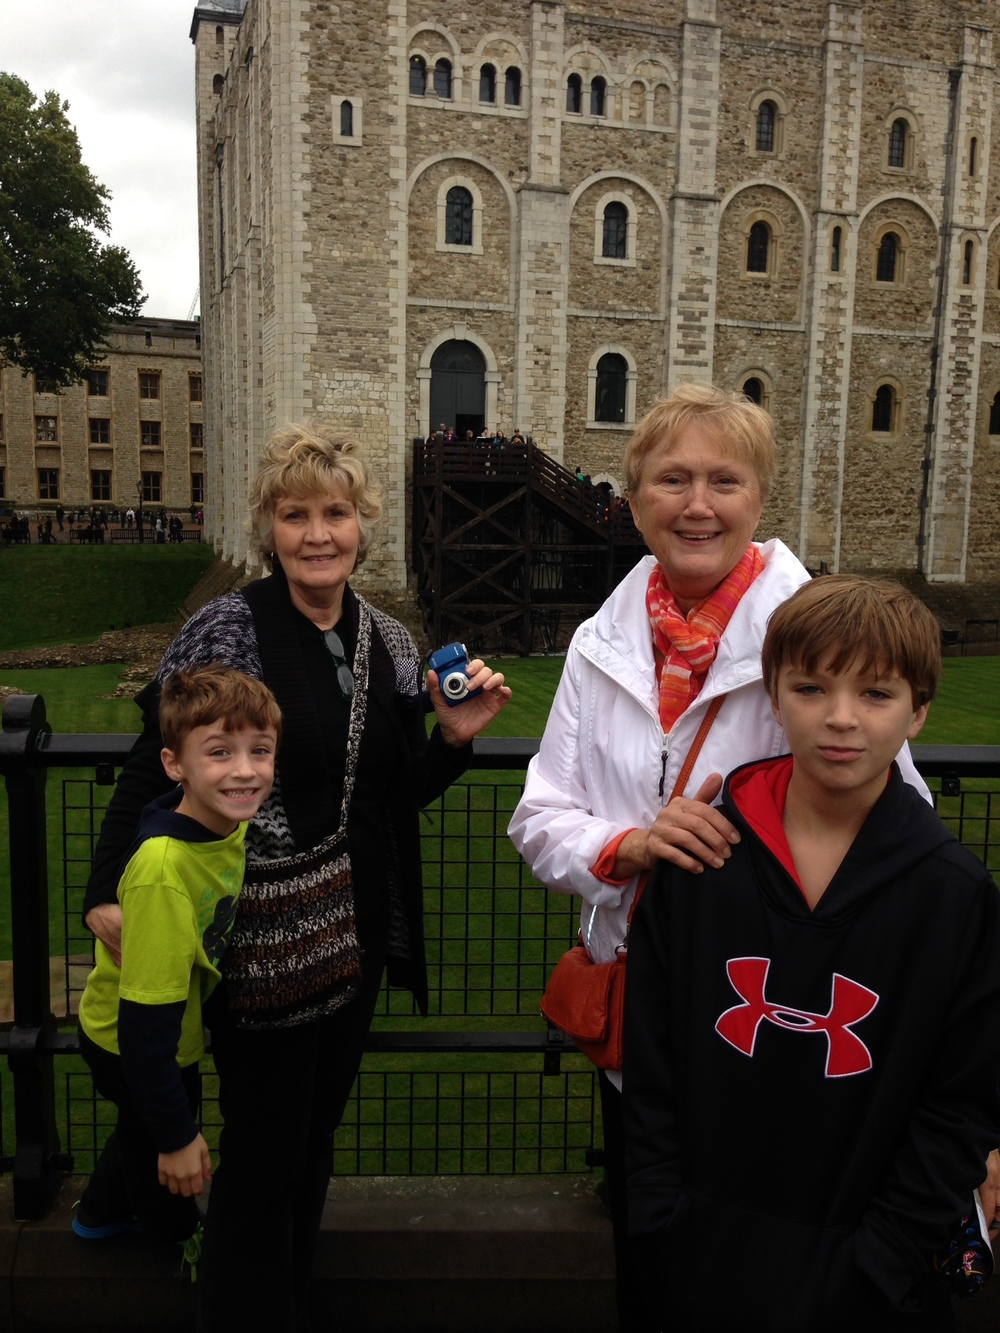 My mom, my mother-in-law and my sons at the Tower of London in 2012. Margaret Douglas spent some quality time here on 3 occasions.